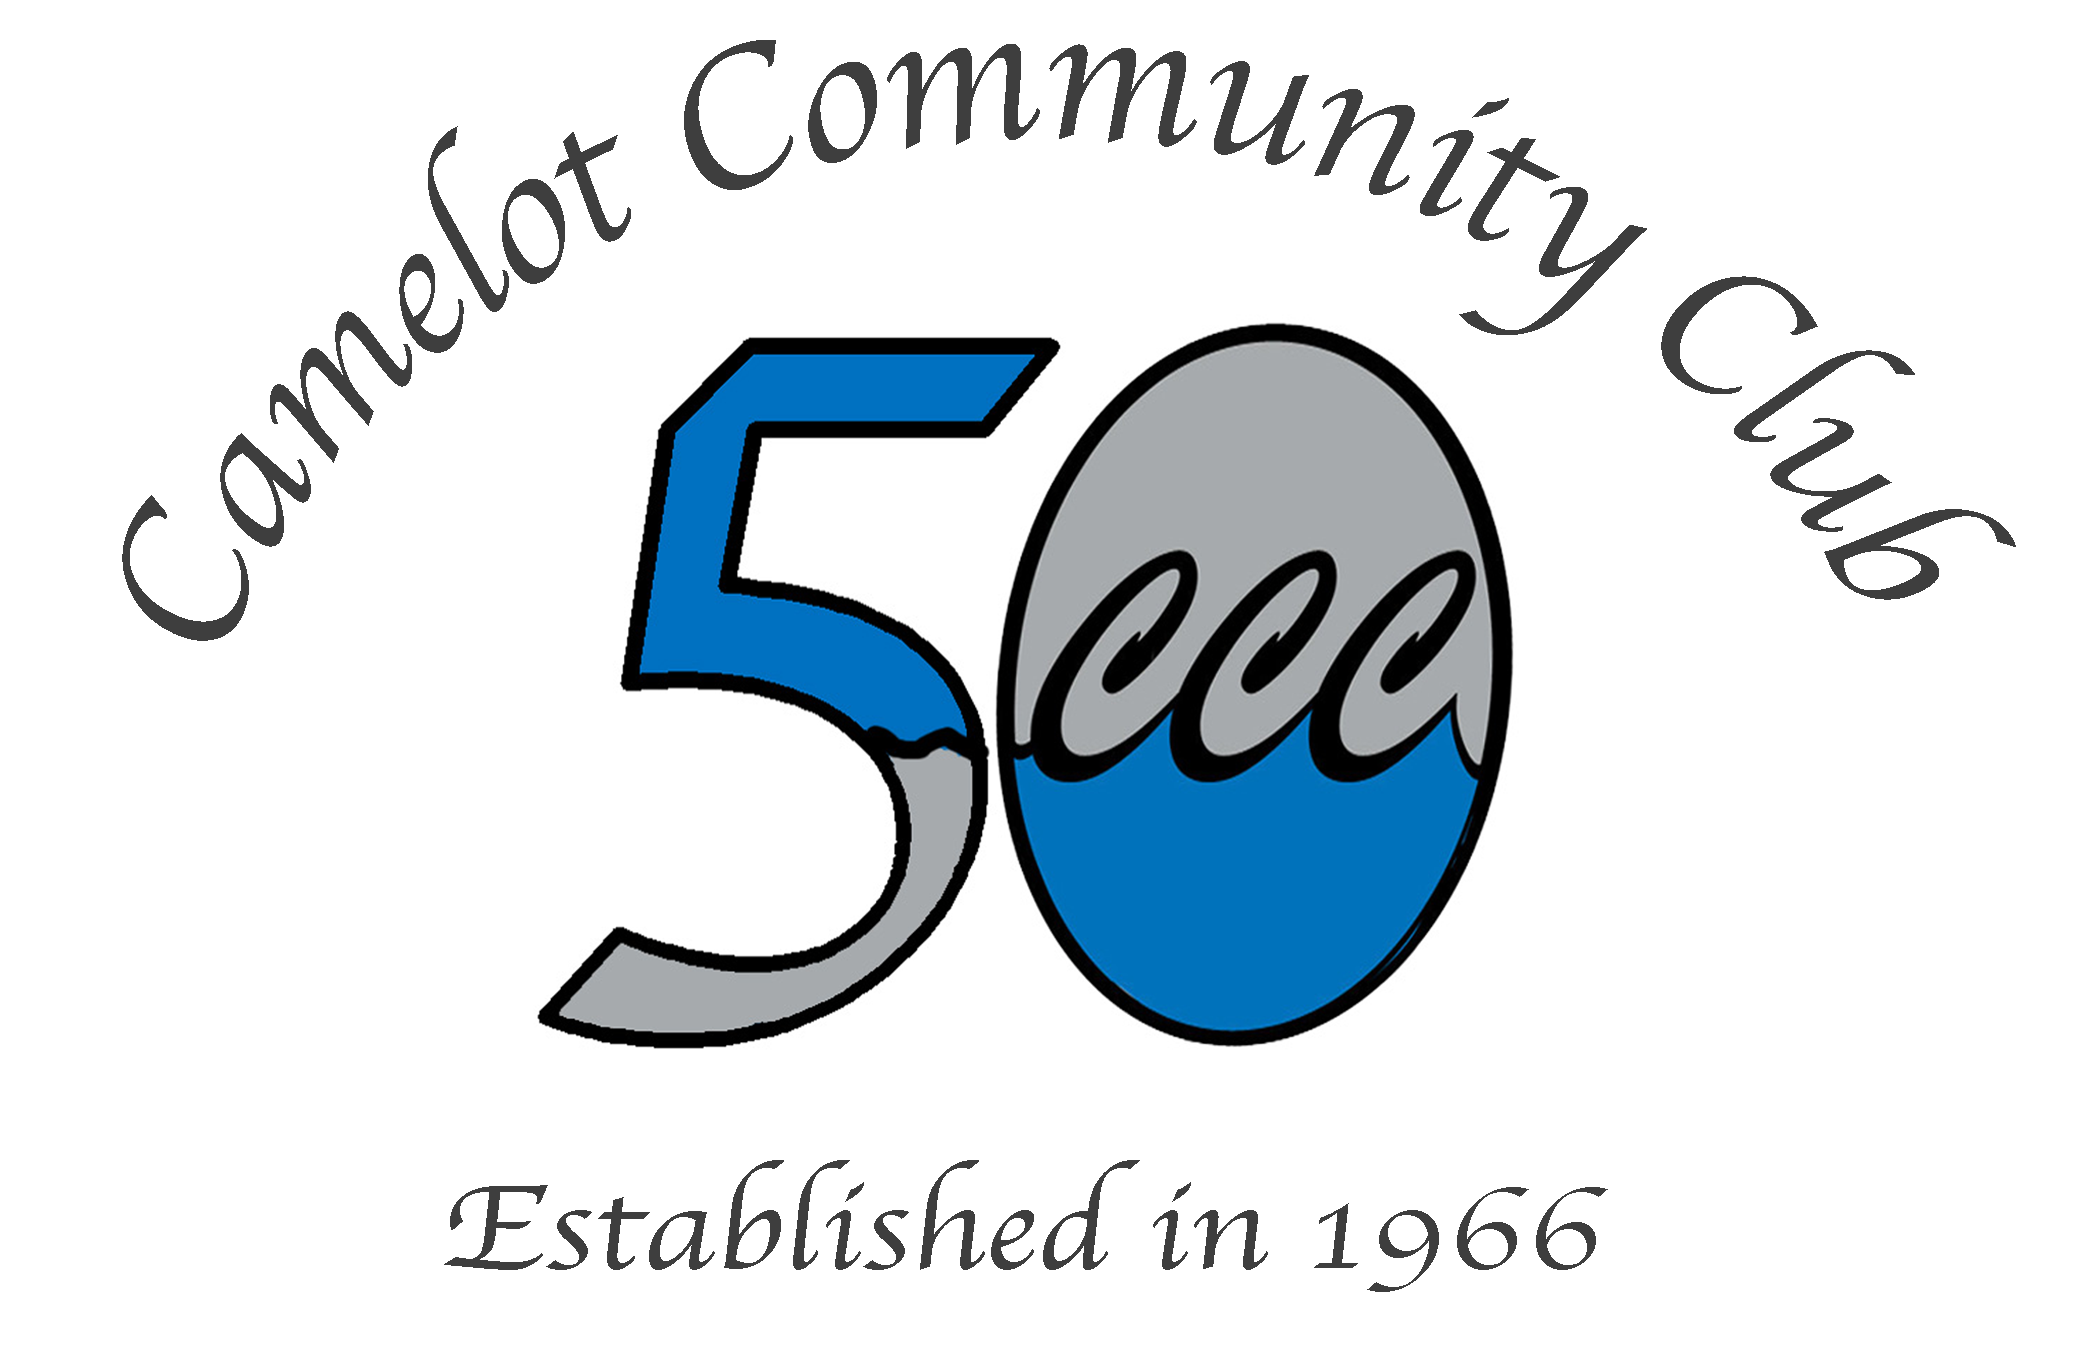 This summer, Camelot Community Club is celebrating 50 Years of Neighbors Becoming Friends.  We are celebrating all summer long! See our Calendar for exciting updates!